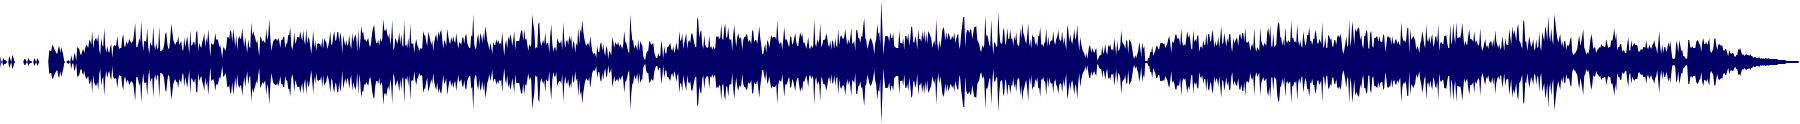 waveform of track #67004